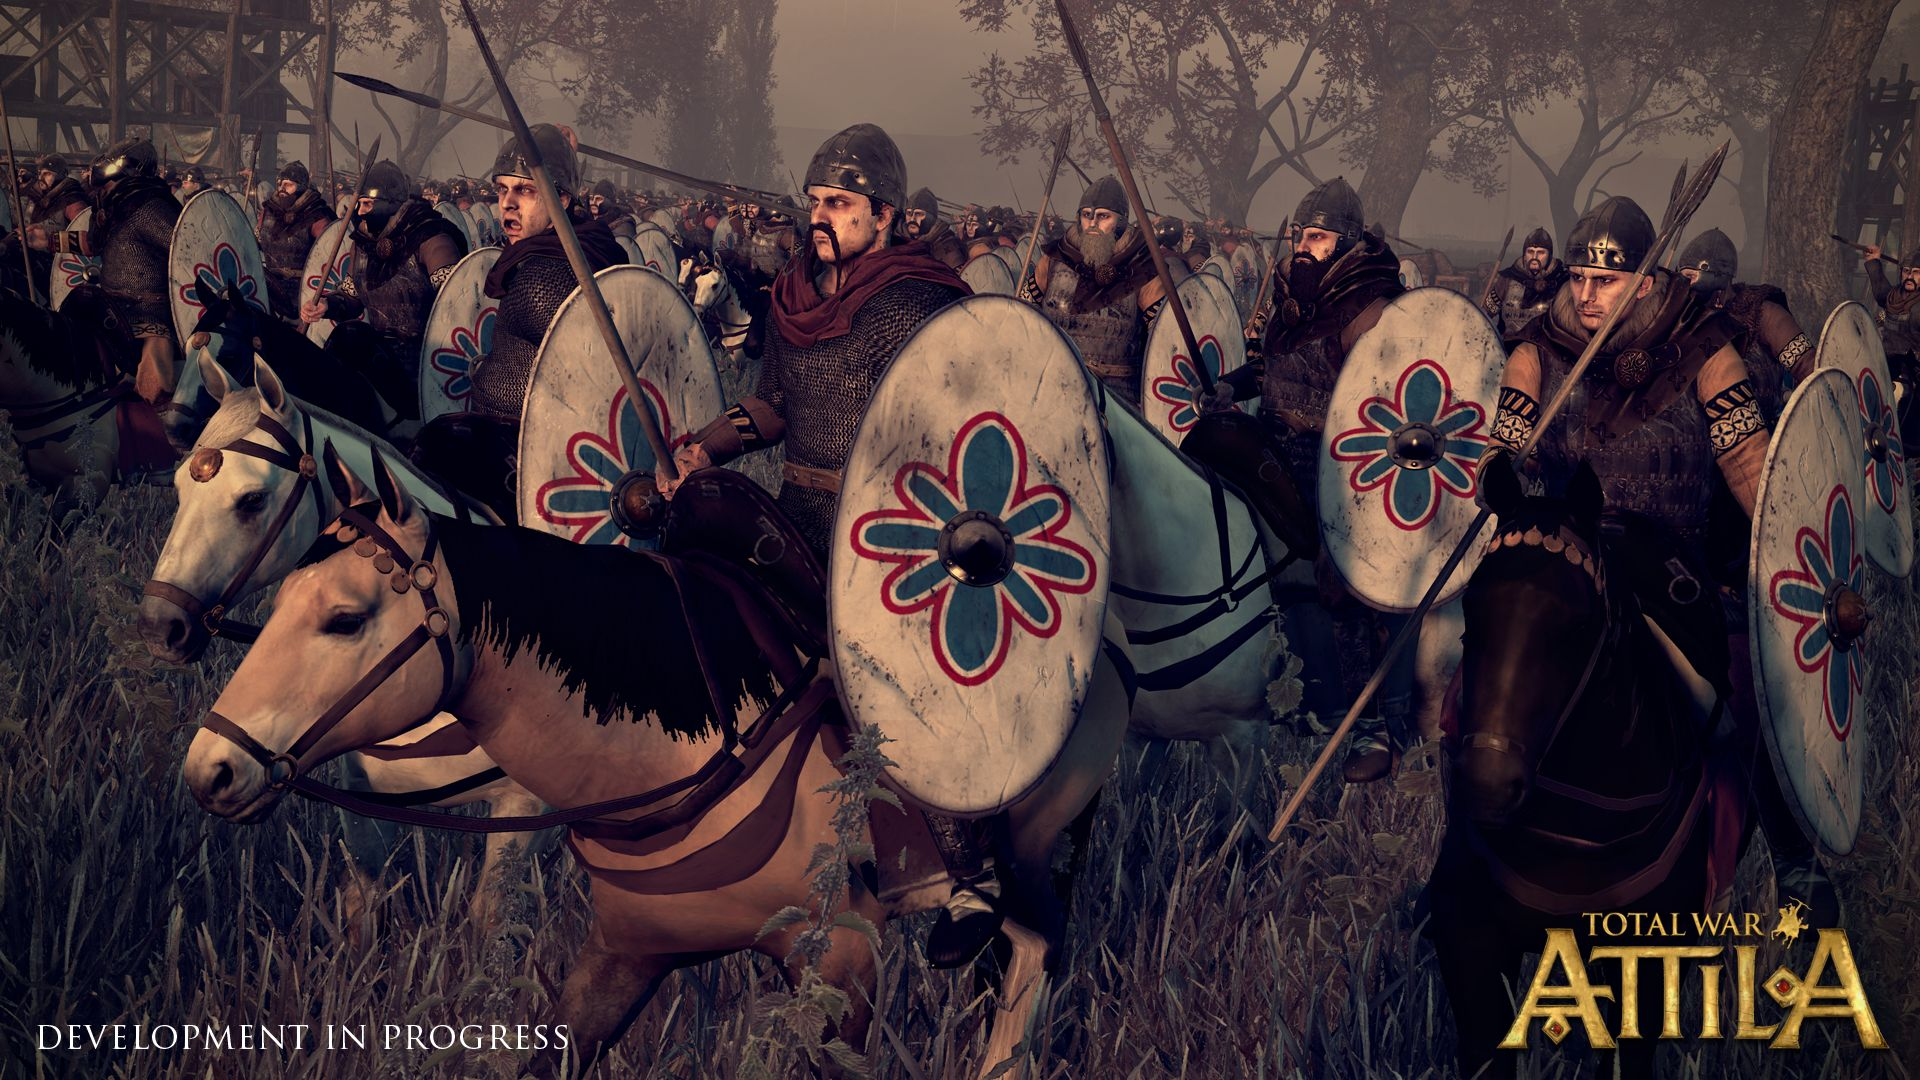 Total War: Attila Will Get Assembly Kit for Modding in April